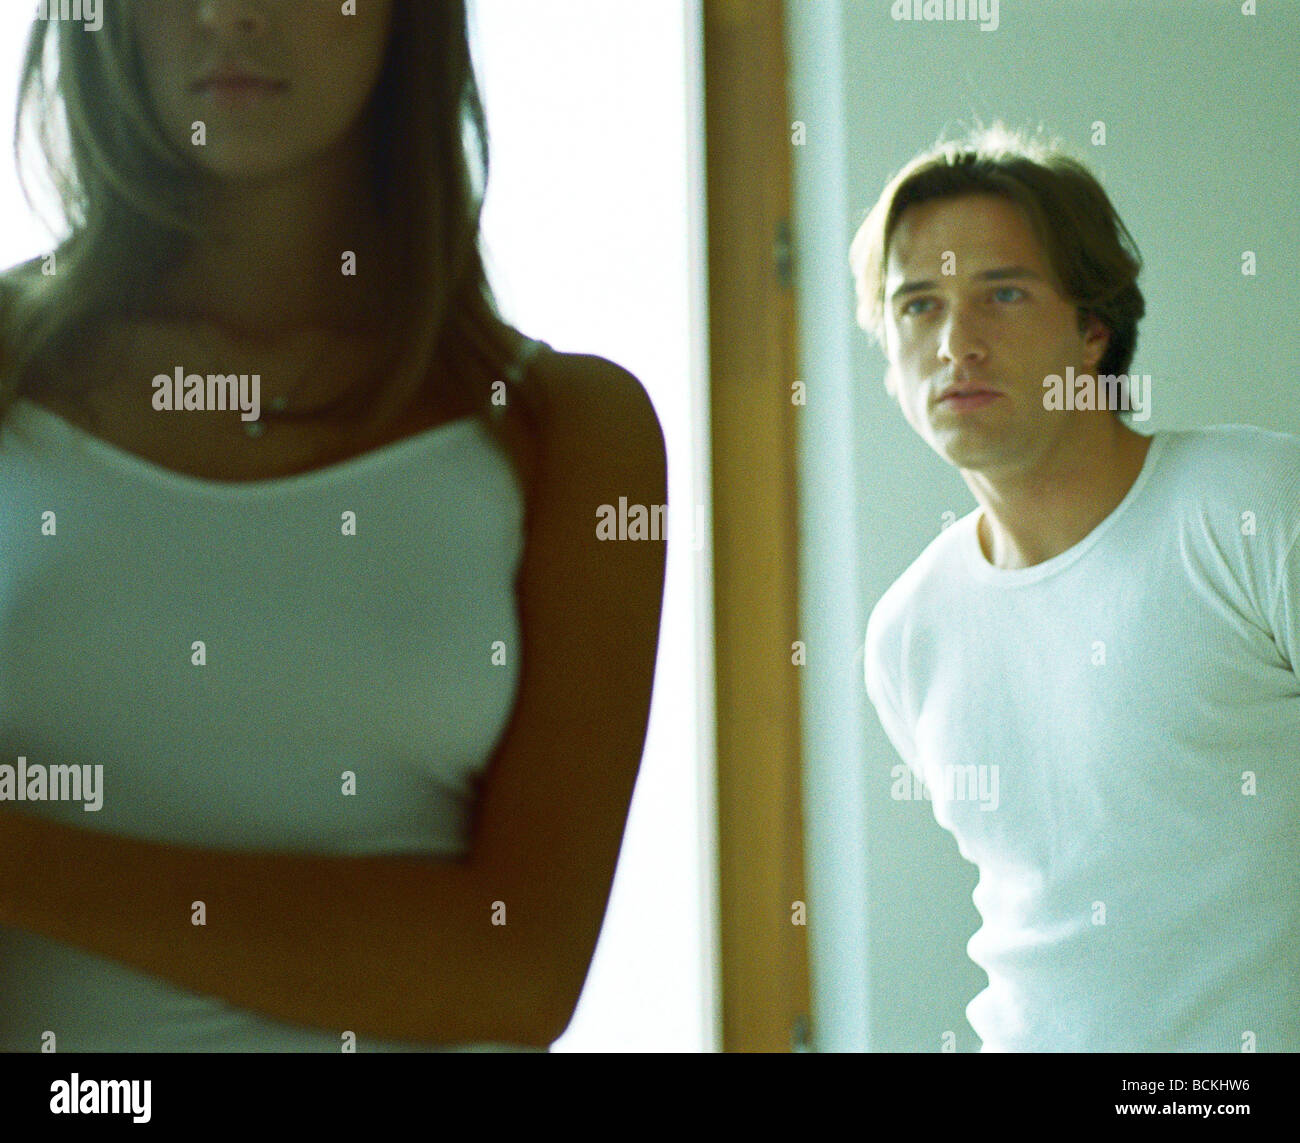 Couple standing apart, man looking at woman - Stock Image